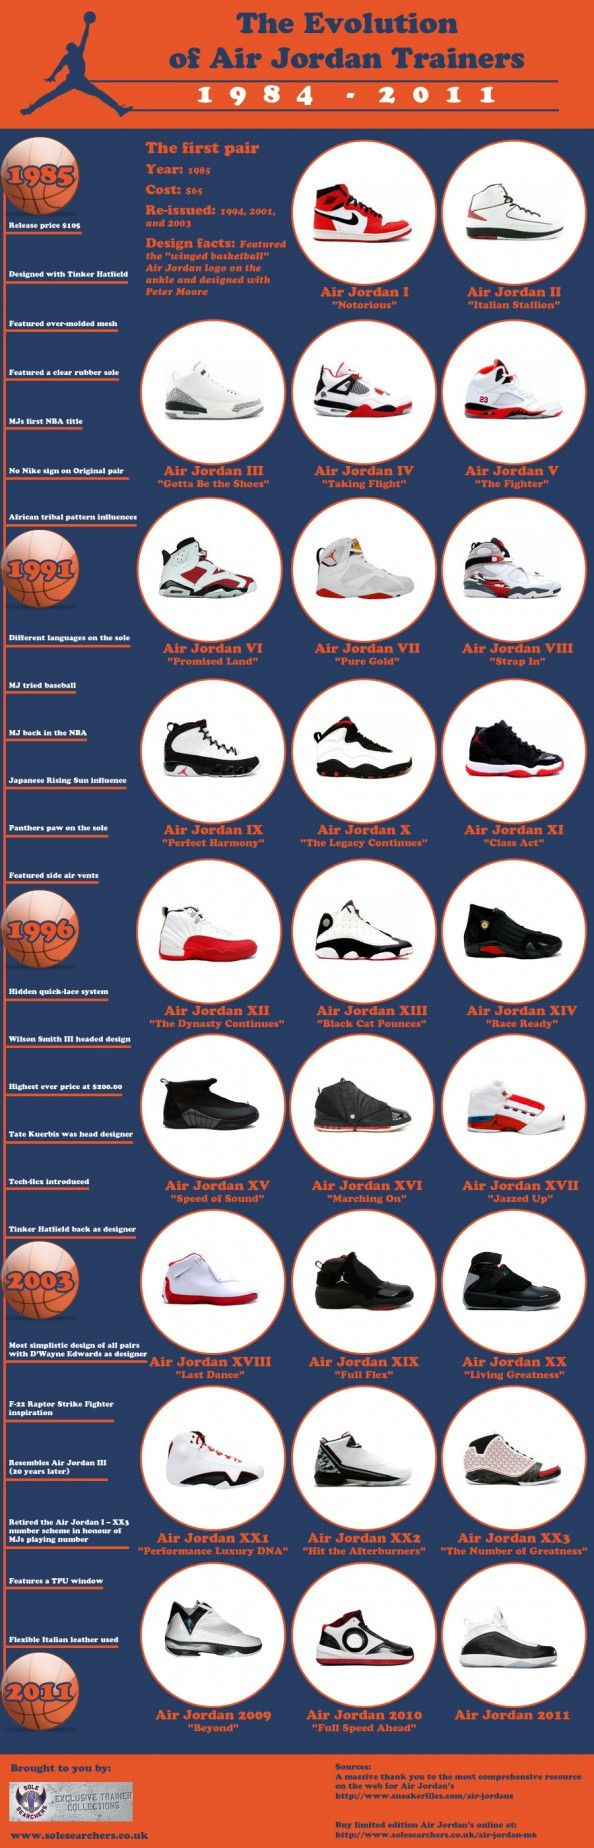 The Evolution of Air Jordan Trainers -Infographic